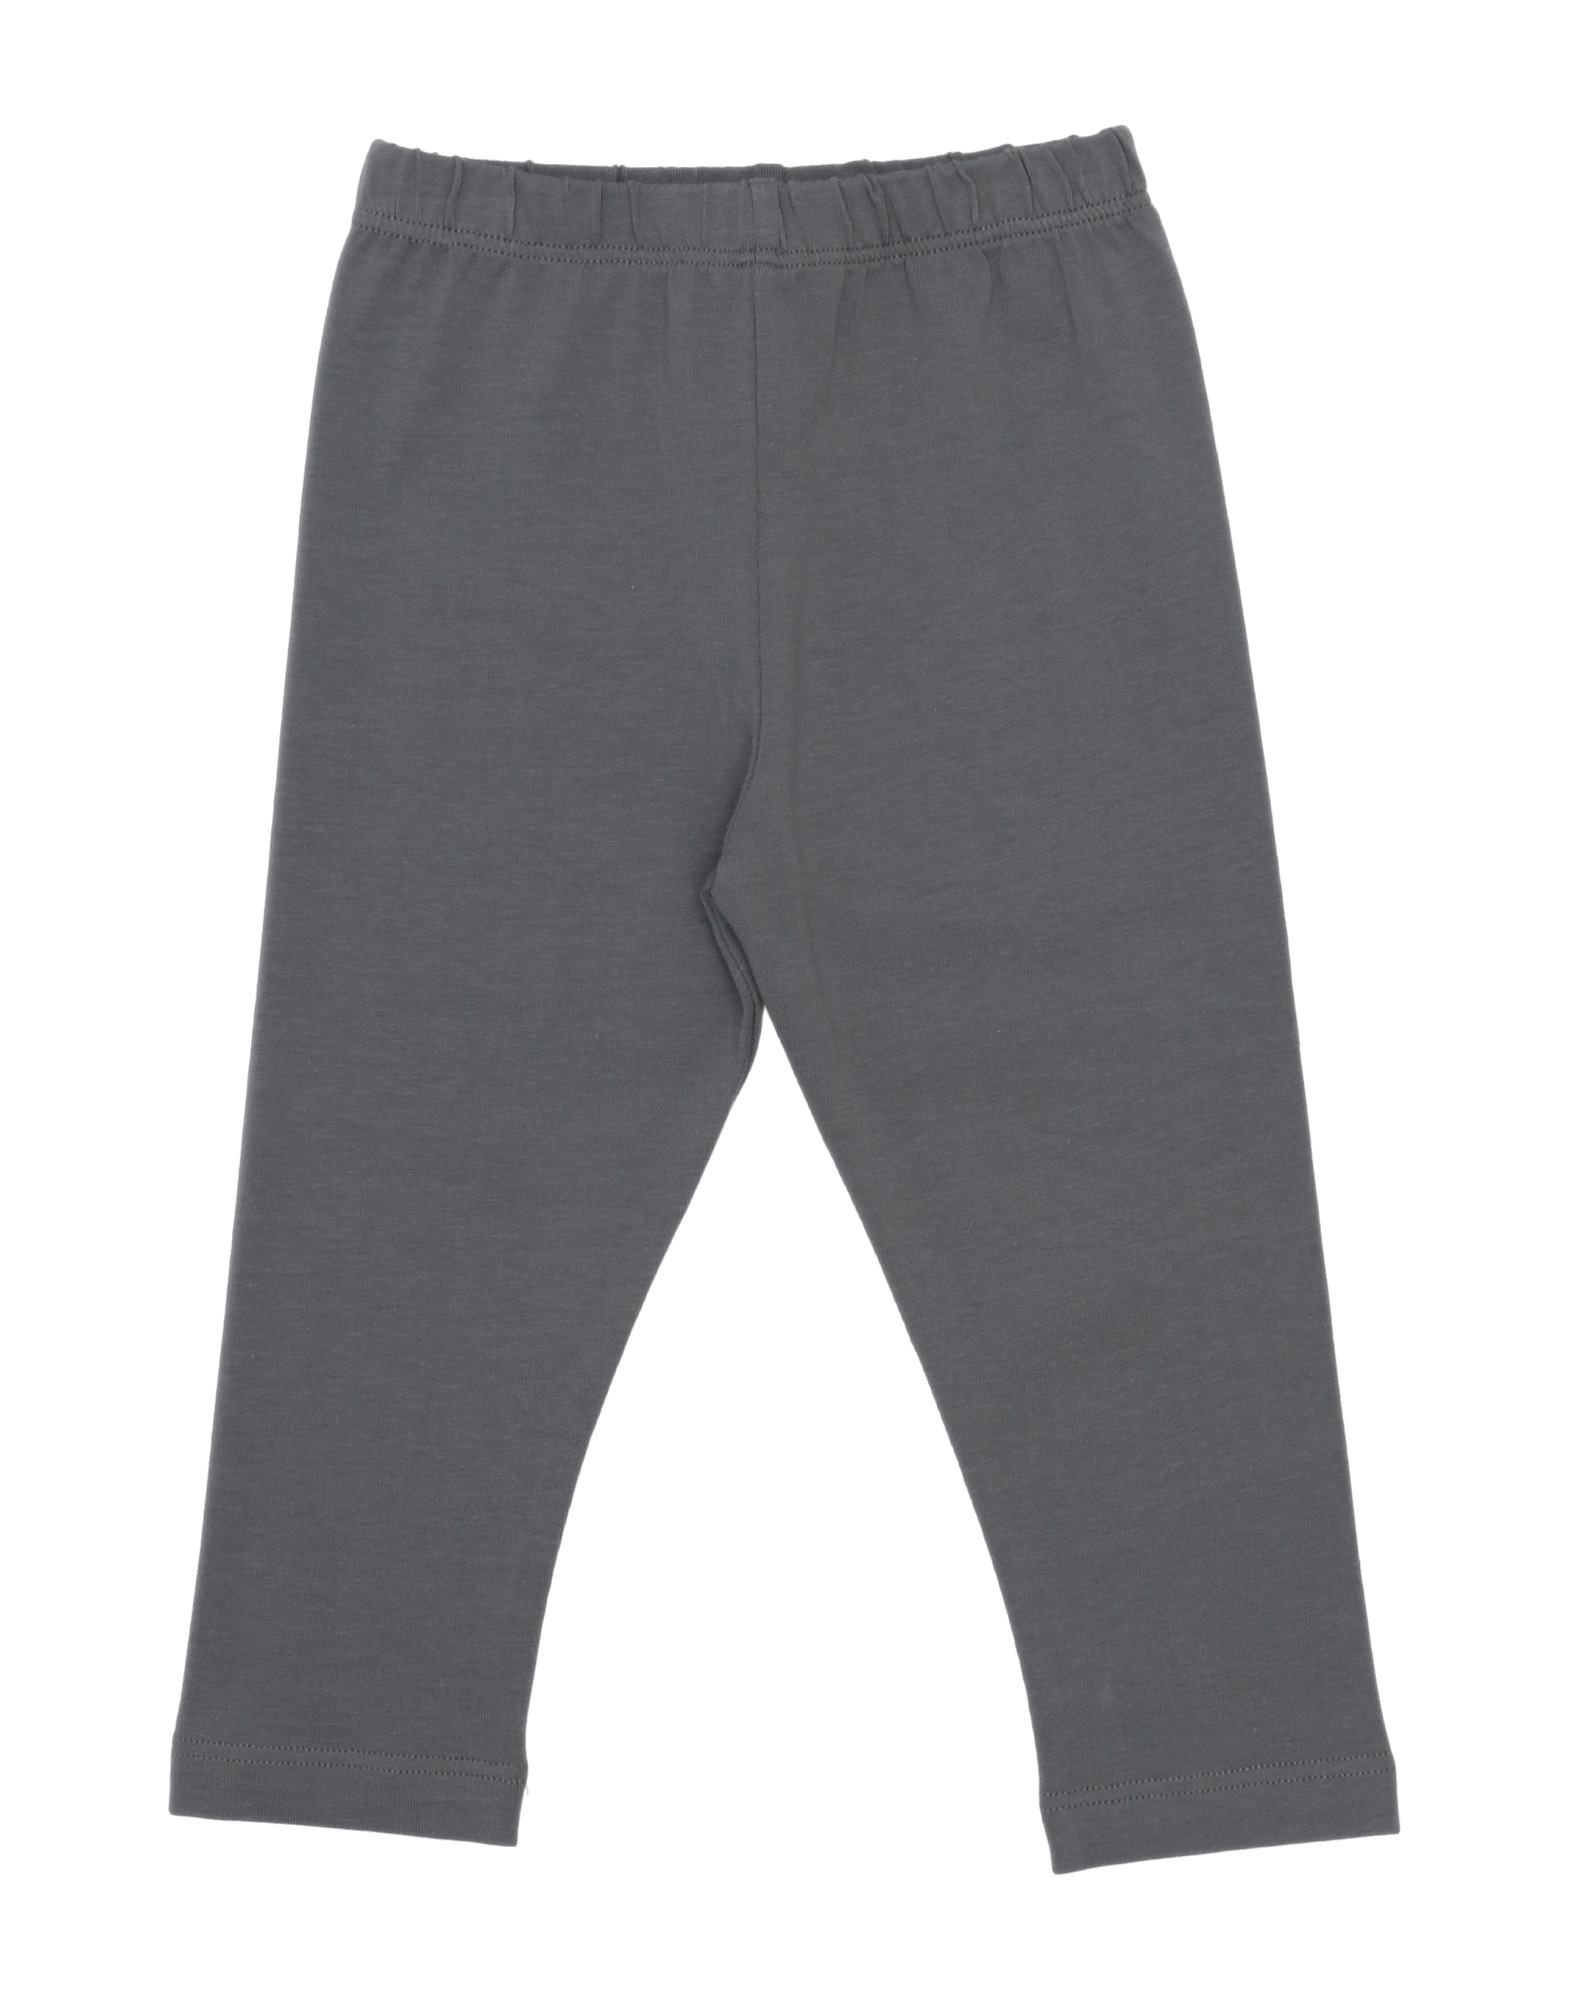 Bisous Kids' Casual Pants In Grey